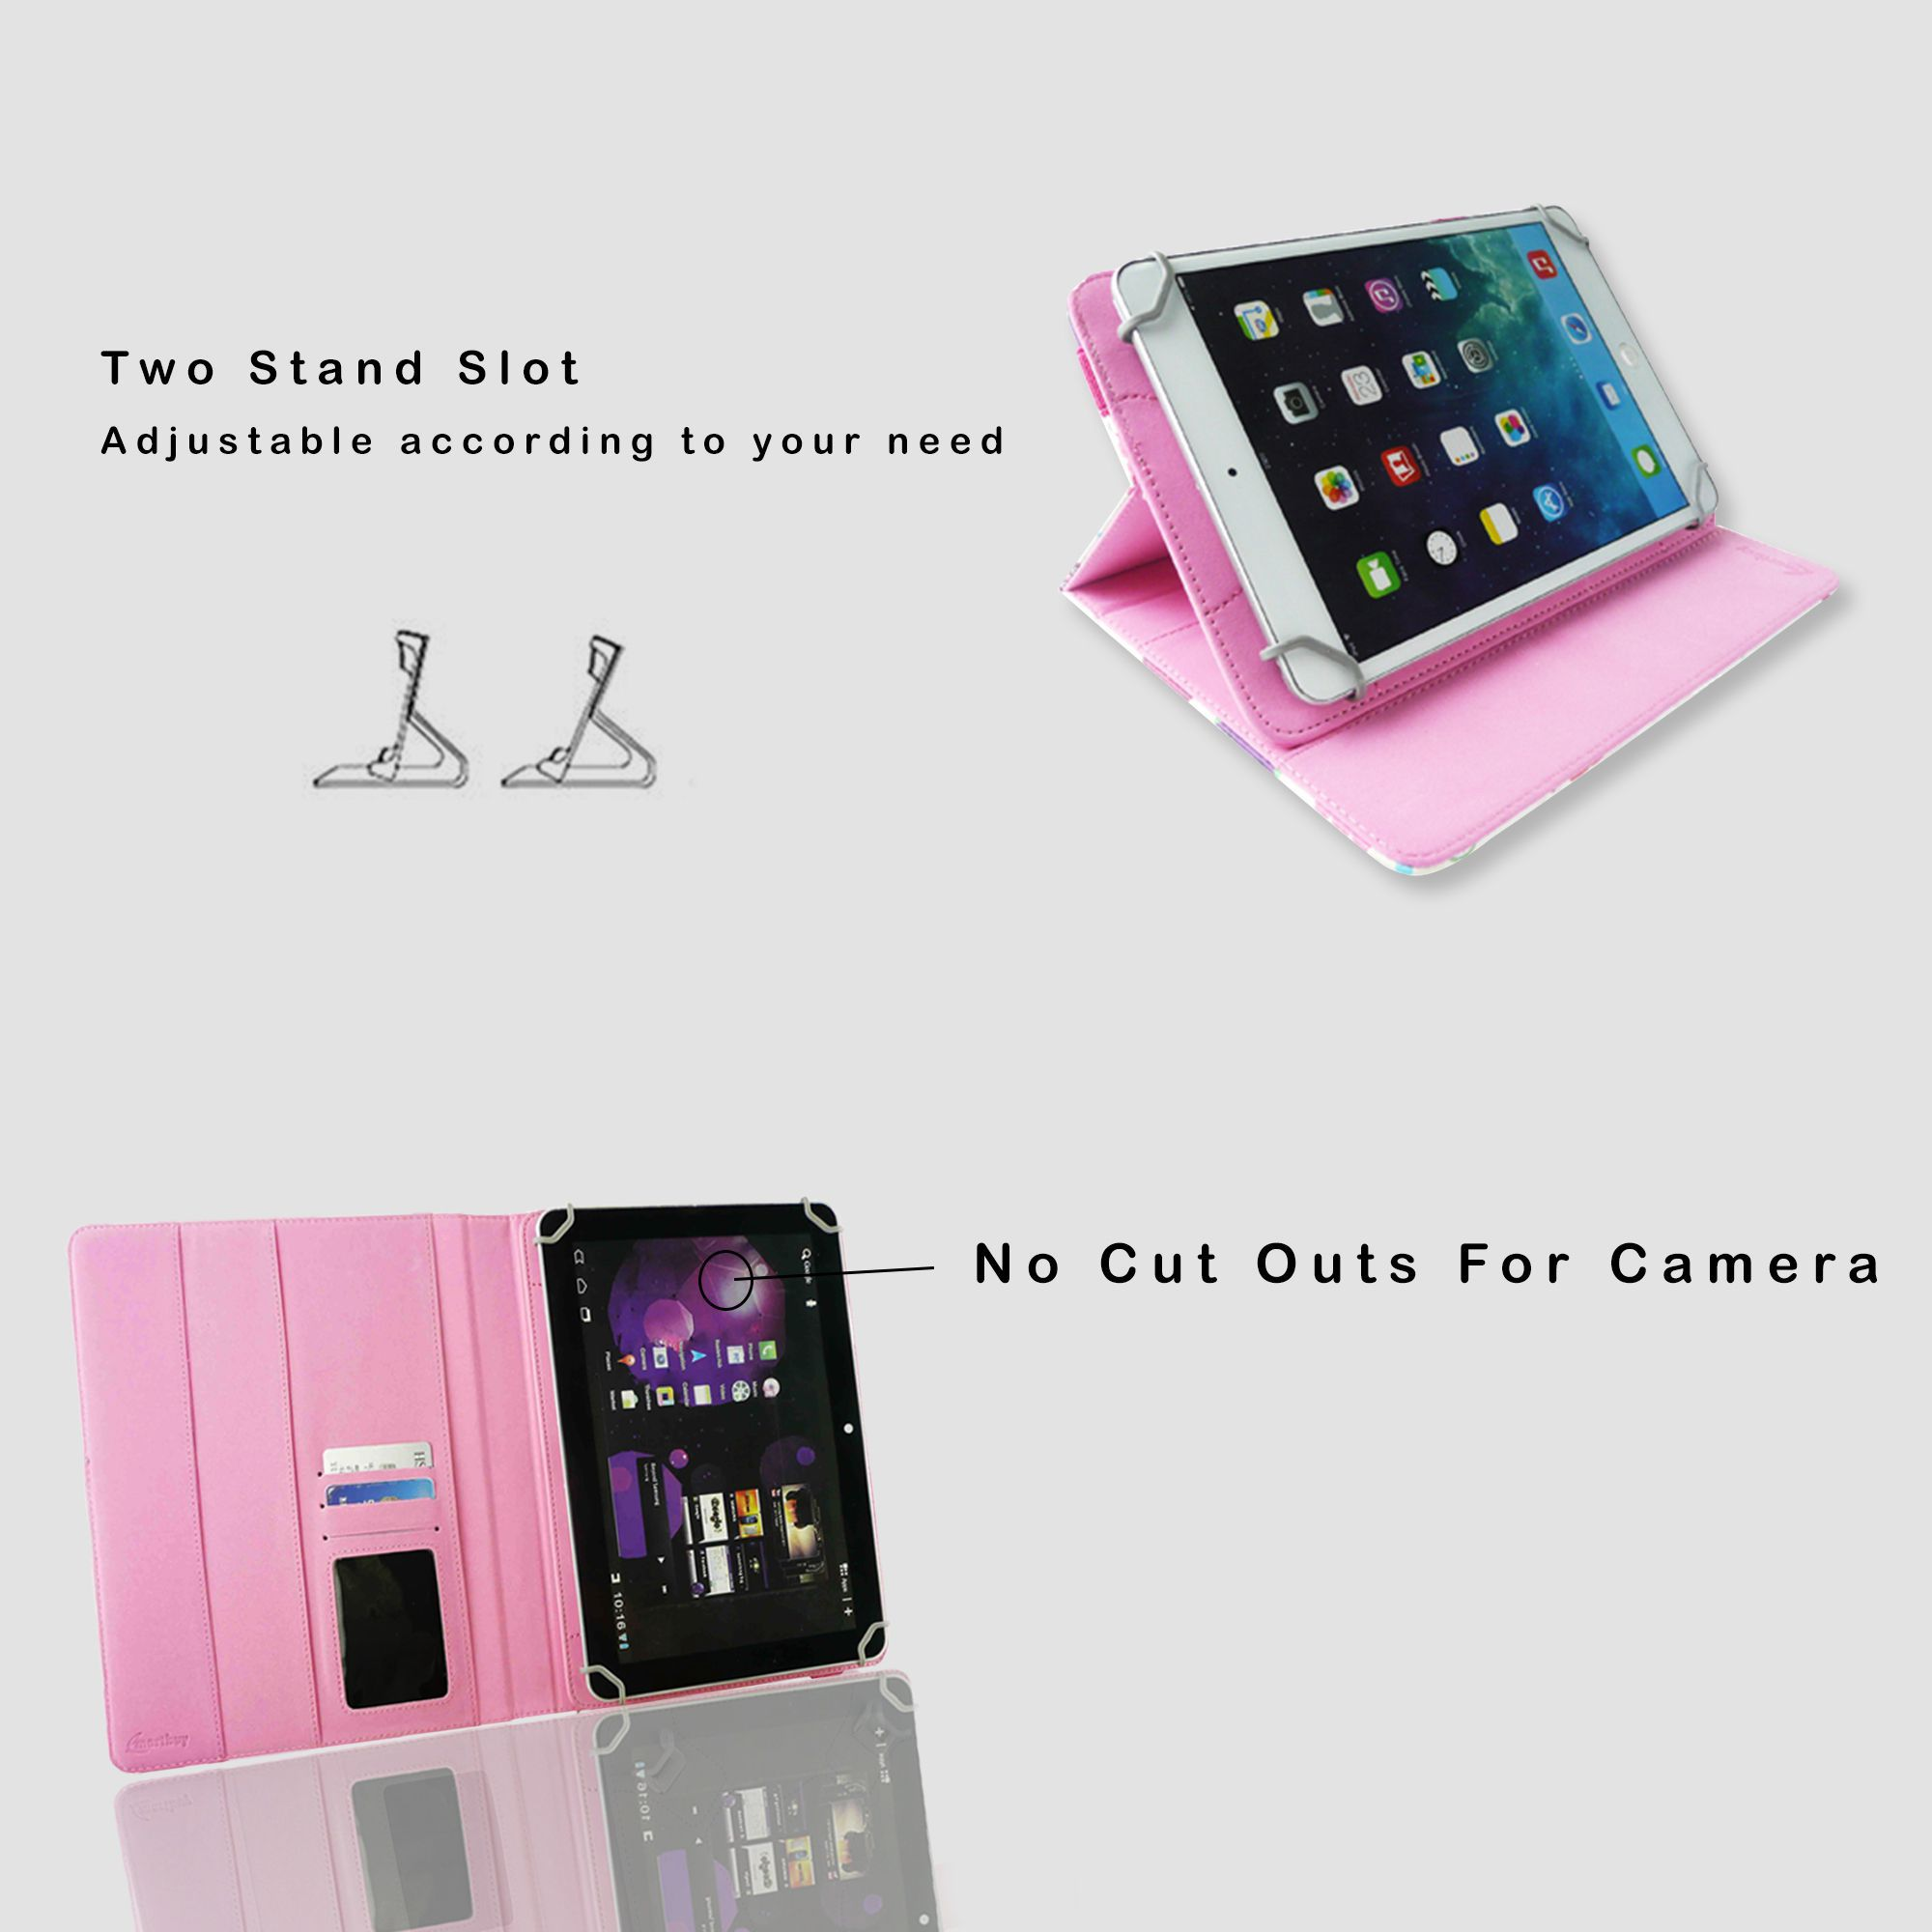 info for 88438 74084 Samsung Galaxy Tab 4 T231 Flip Cover By Emartbuy Multi Color